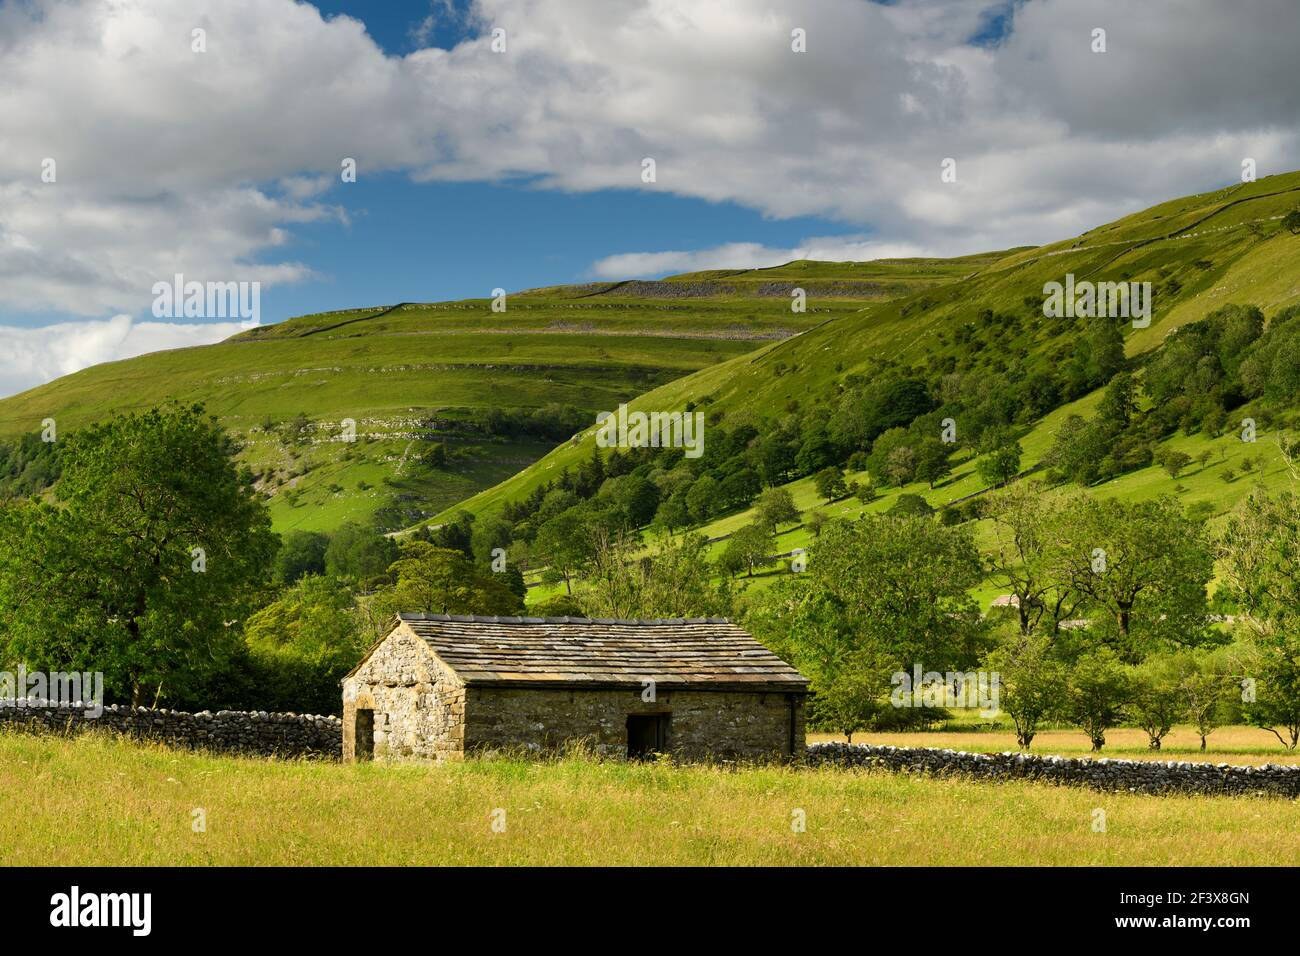 Beautiful sunny Wharfedale countryside (valley, hillsides, field barn, drystone walls, farmland pastures, high hills) - Yorkshire Dales, England, UK. Stock Photo